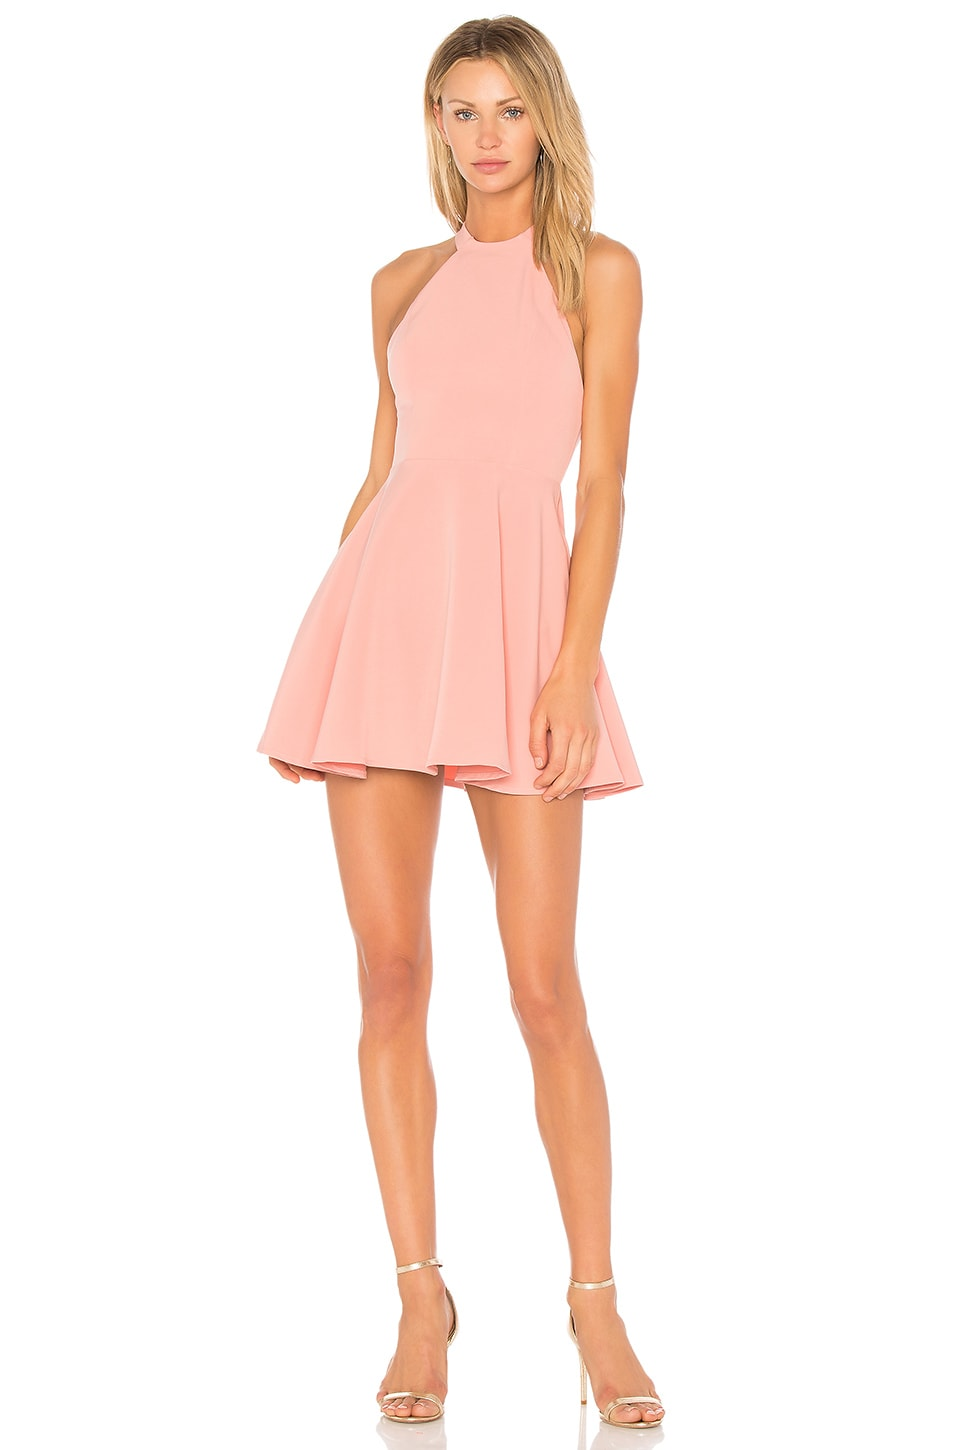 Only Yours Dress in Coral. - size S (also in L,XS) NBD